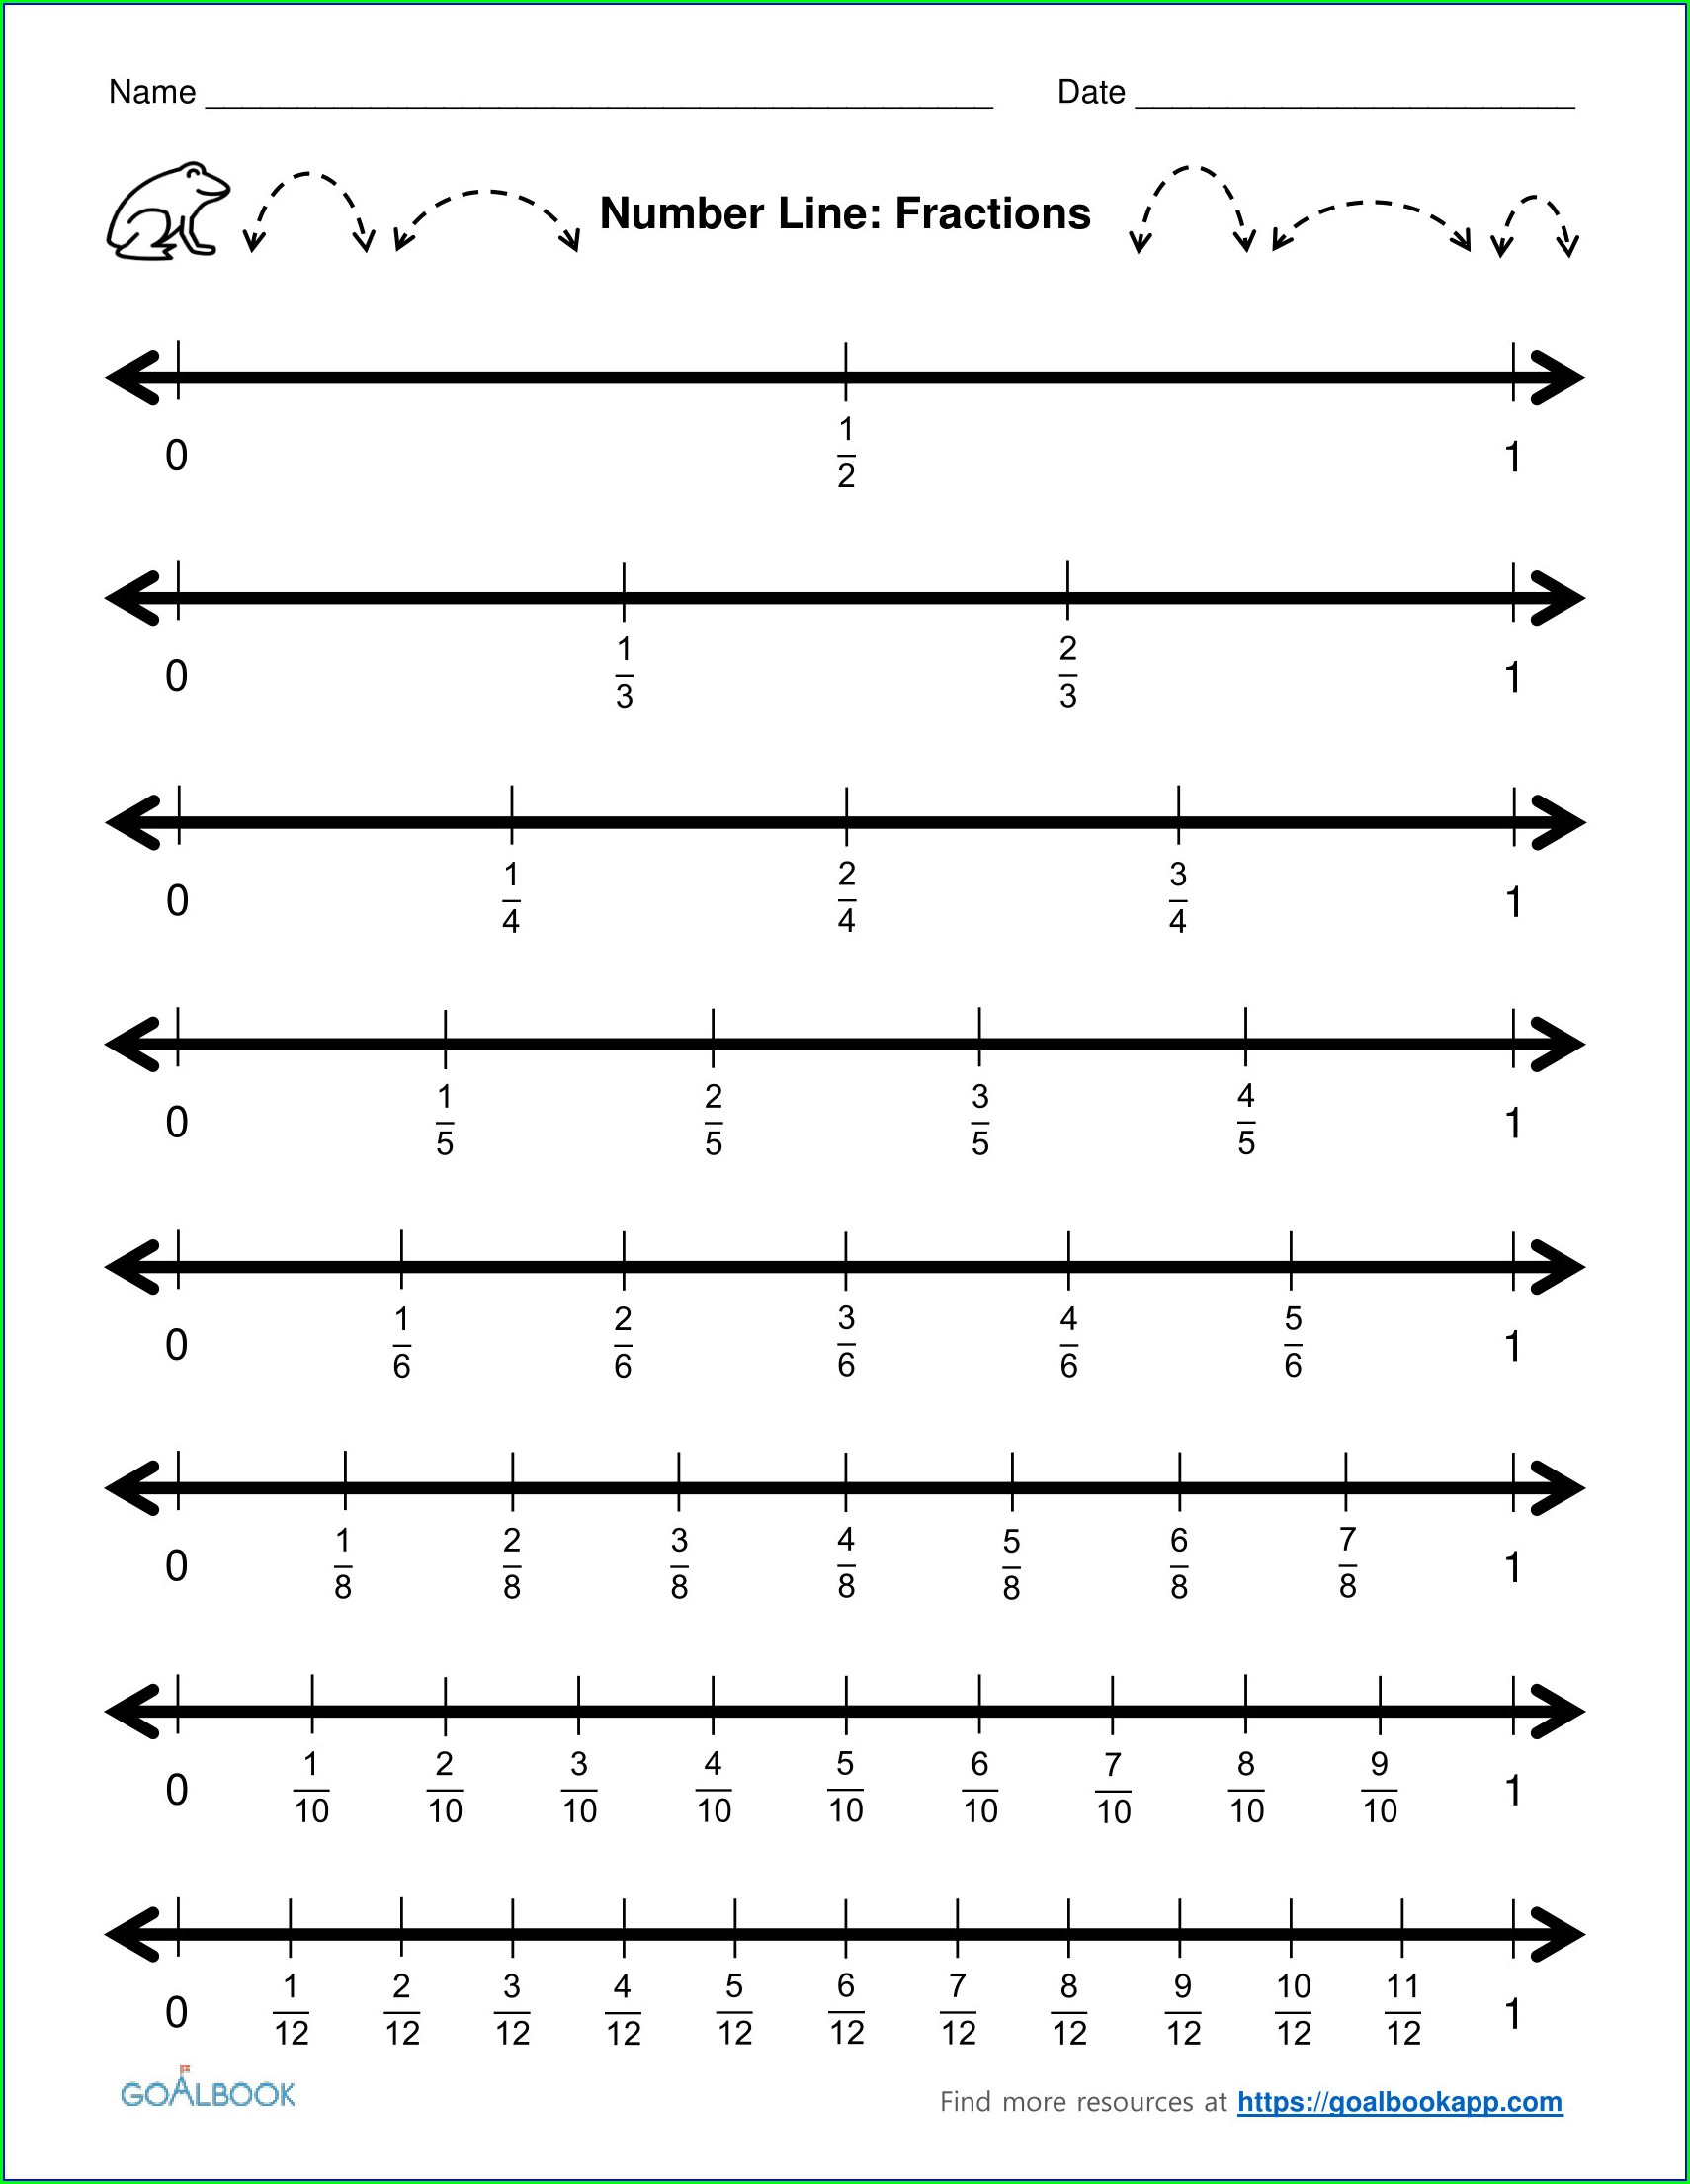 Worksheet For Number Line